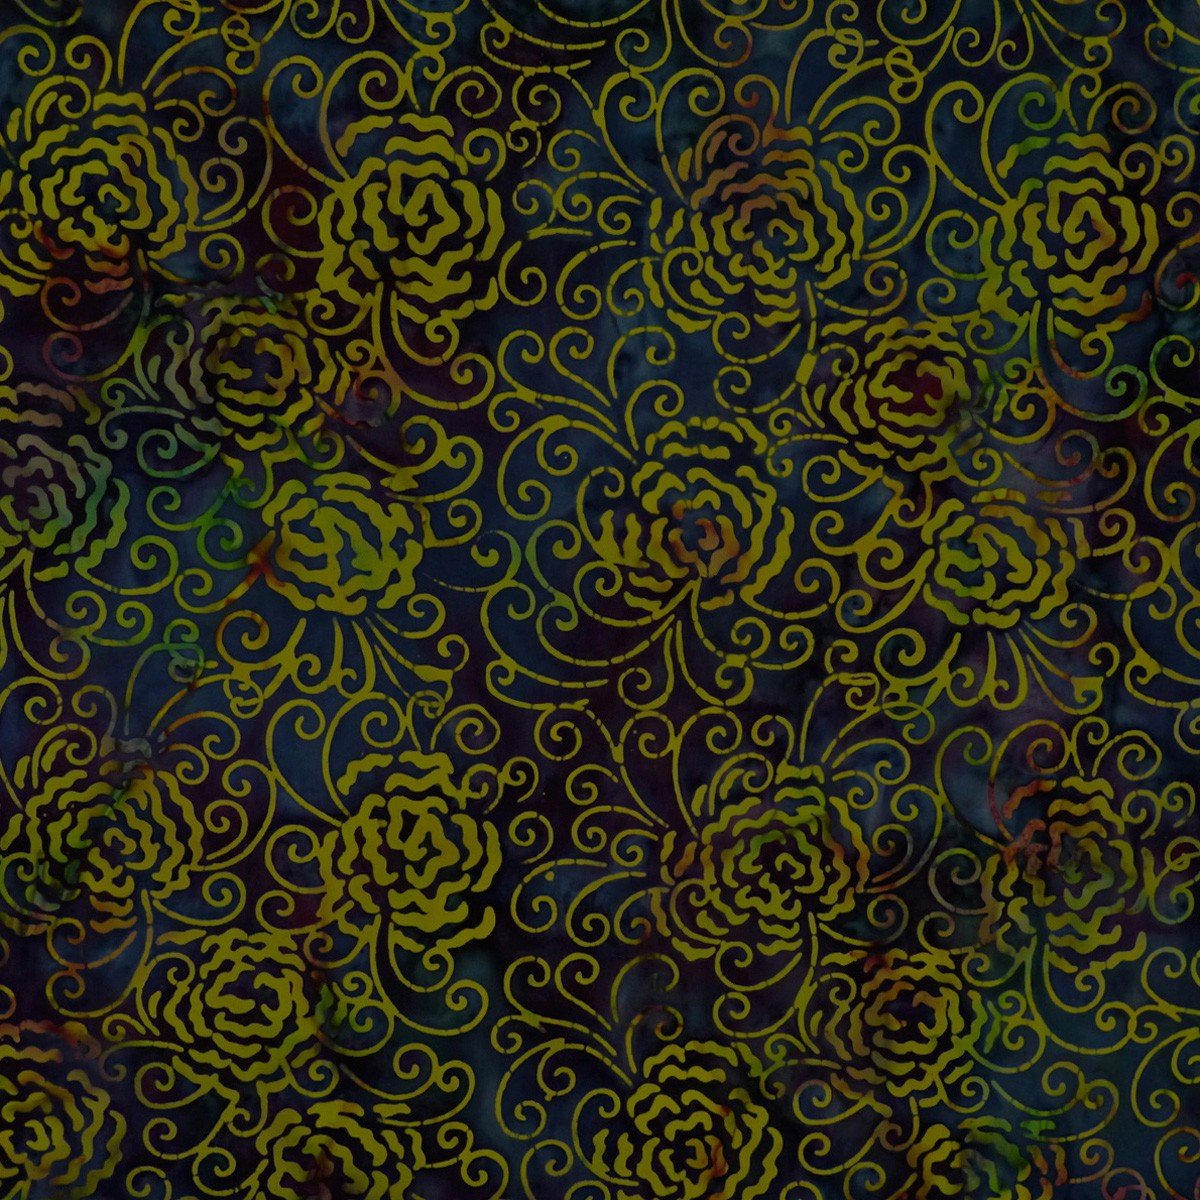 Batik by Mirah - Riviera - yellow flowers on blue/green